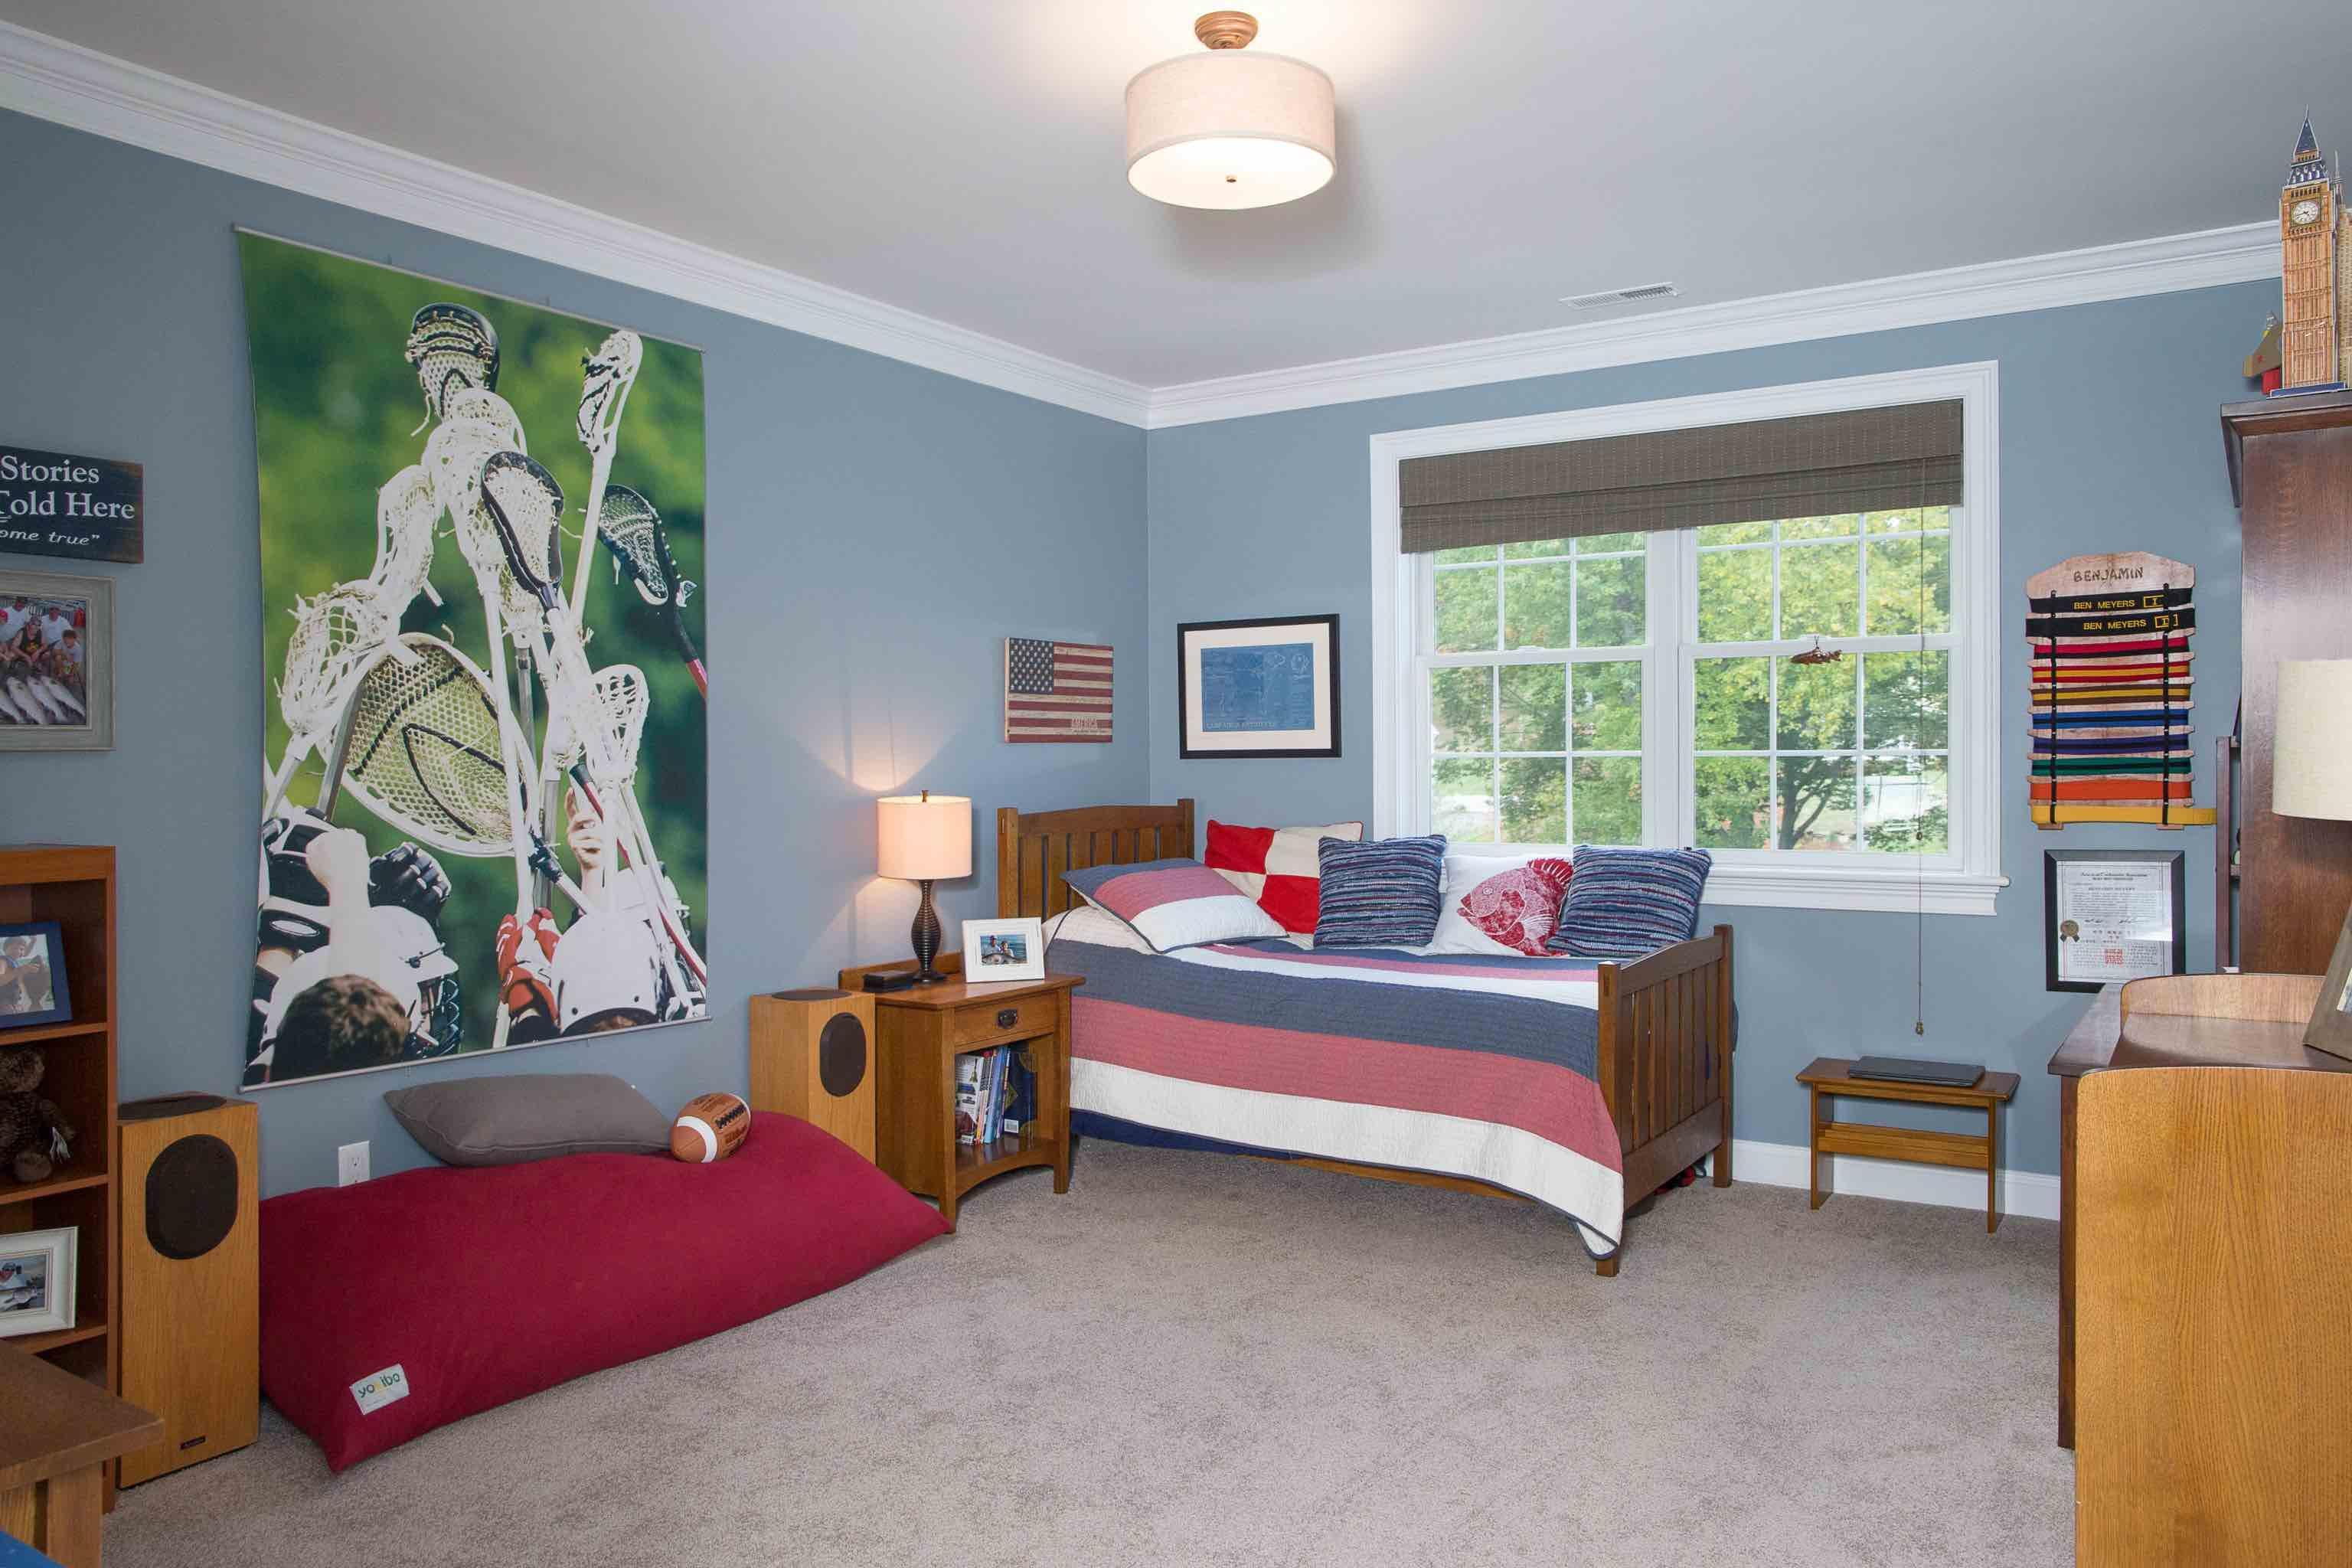 Bedroom featured in the Jackson-The Estates By Sleight Farm at LaGrange in Dutchess County, NY